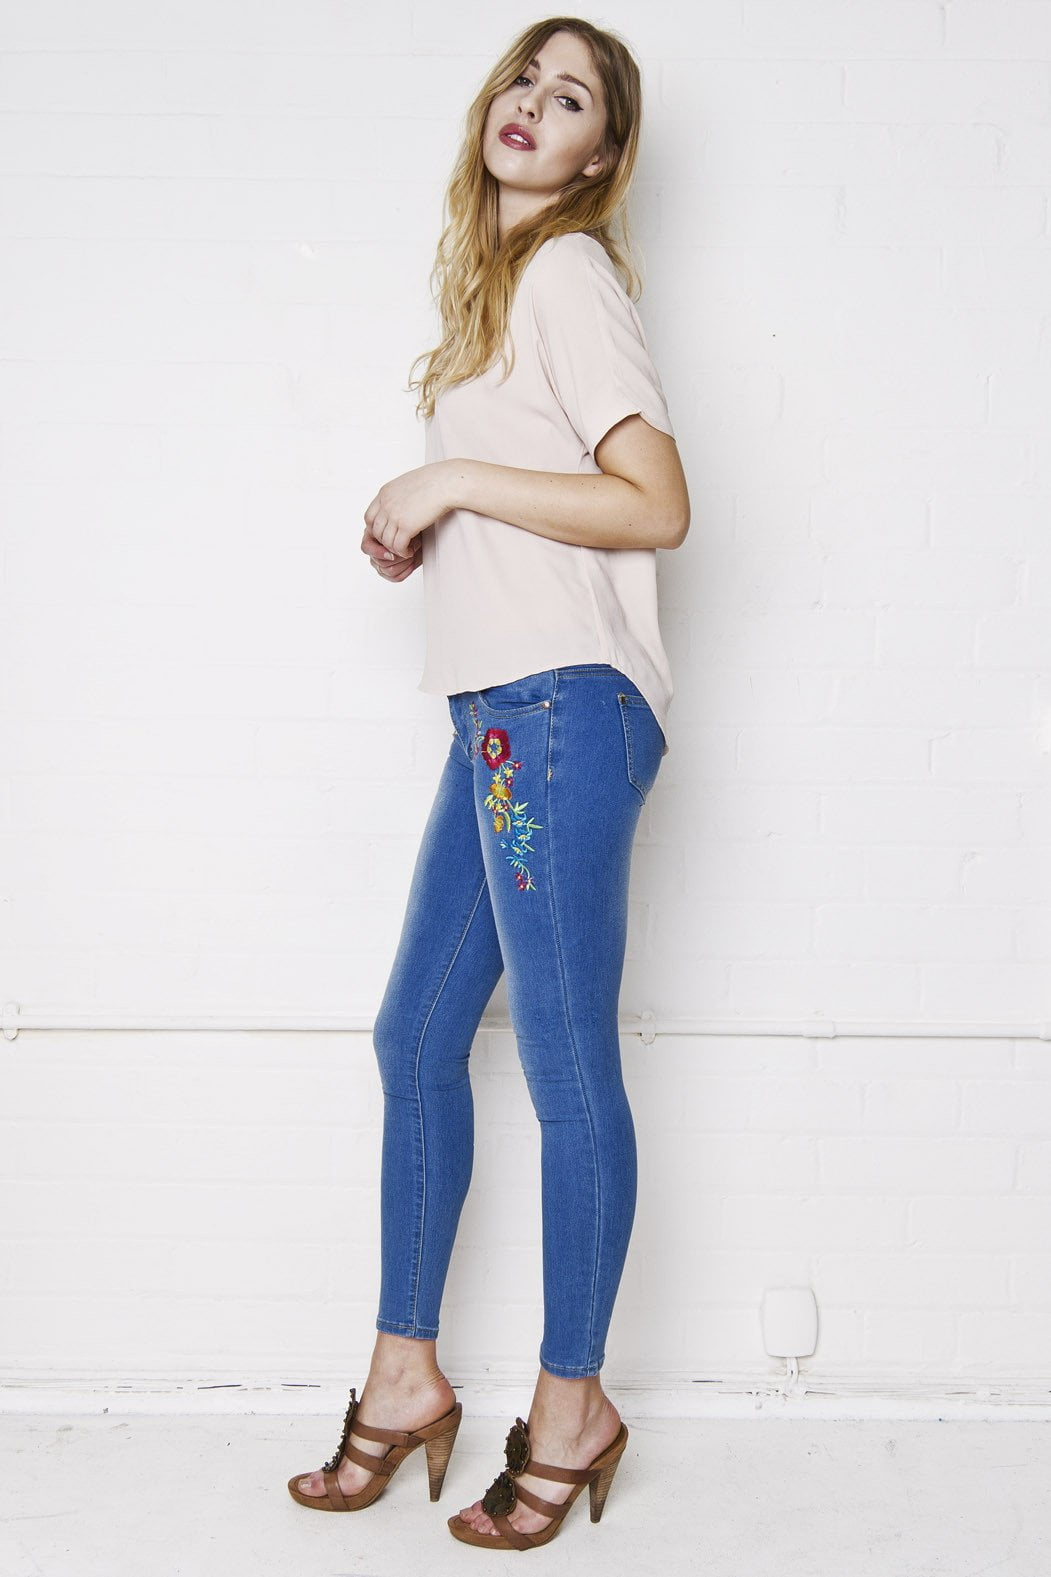 Liquor n Poker - Slayer Low rise Folk embroidered floral skinny jean - Liquor N Poker  Liquor N Poker